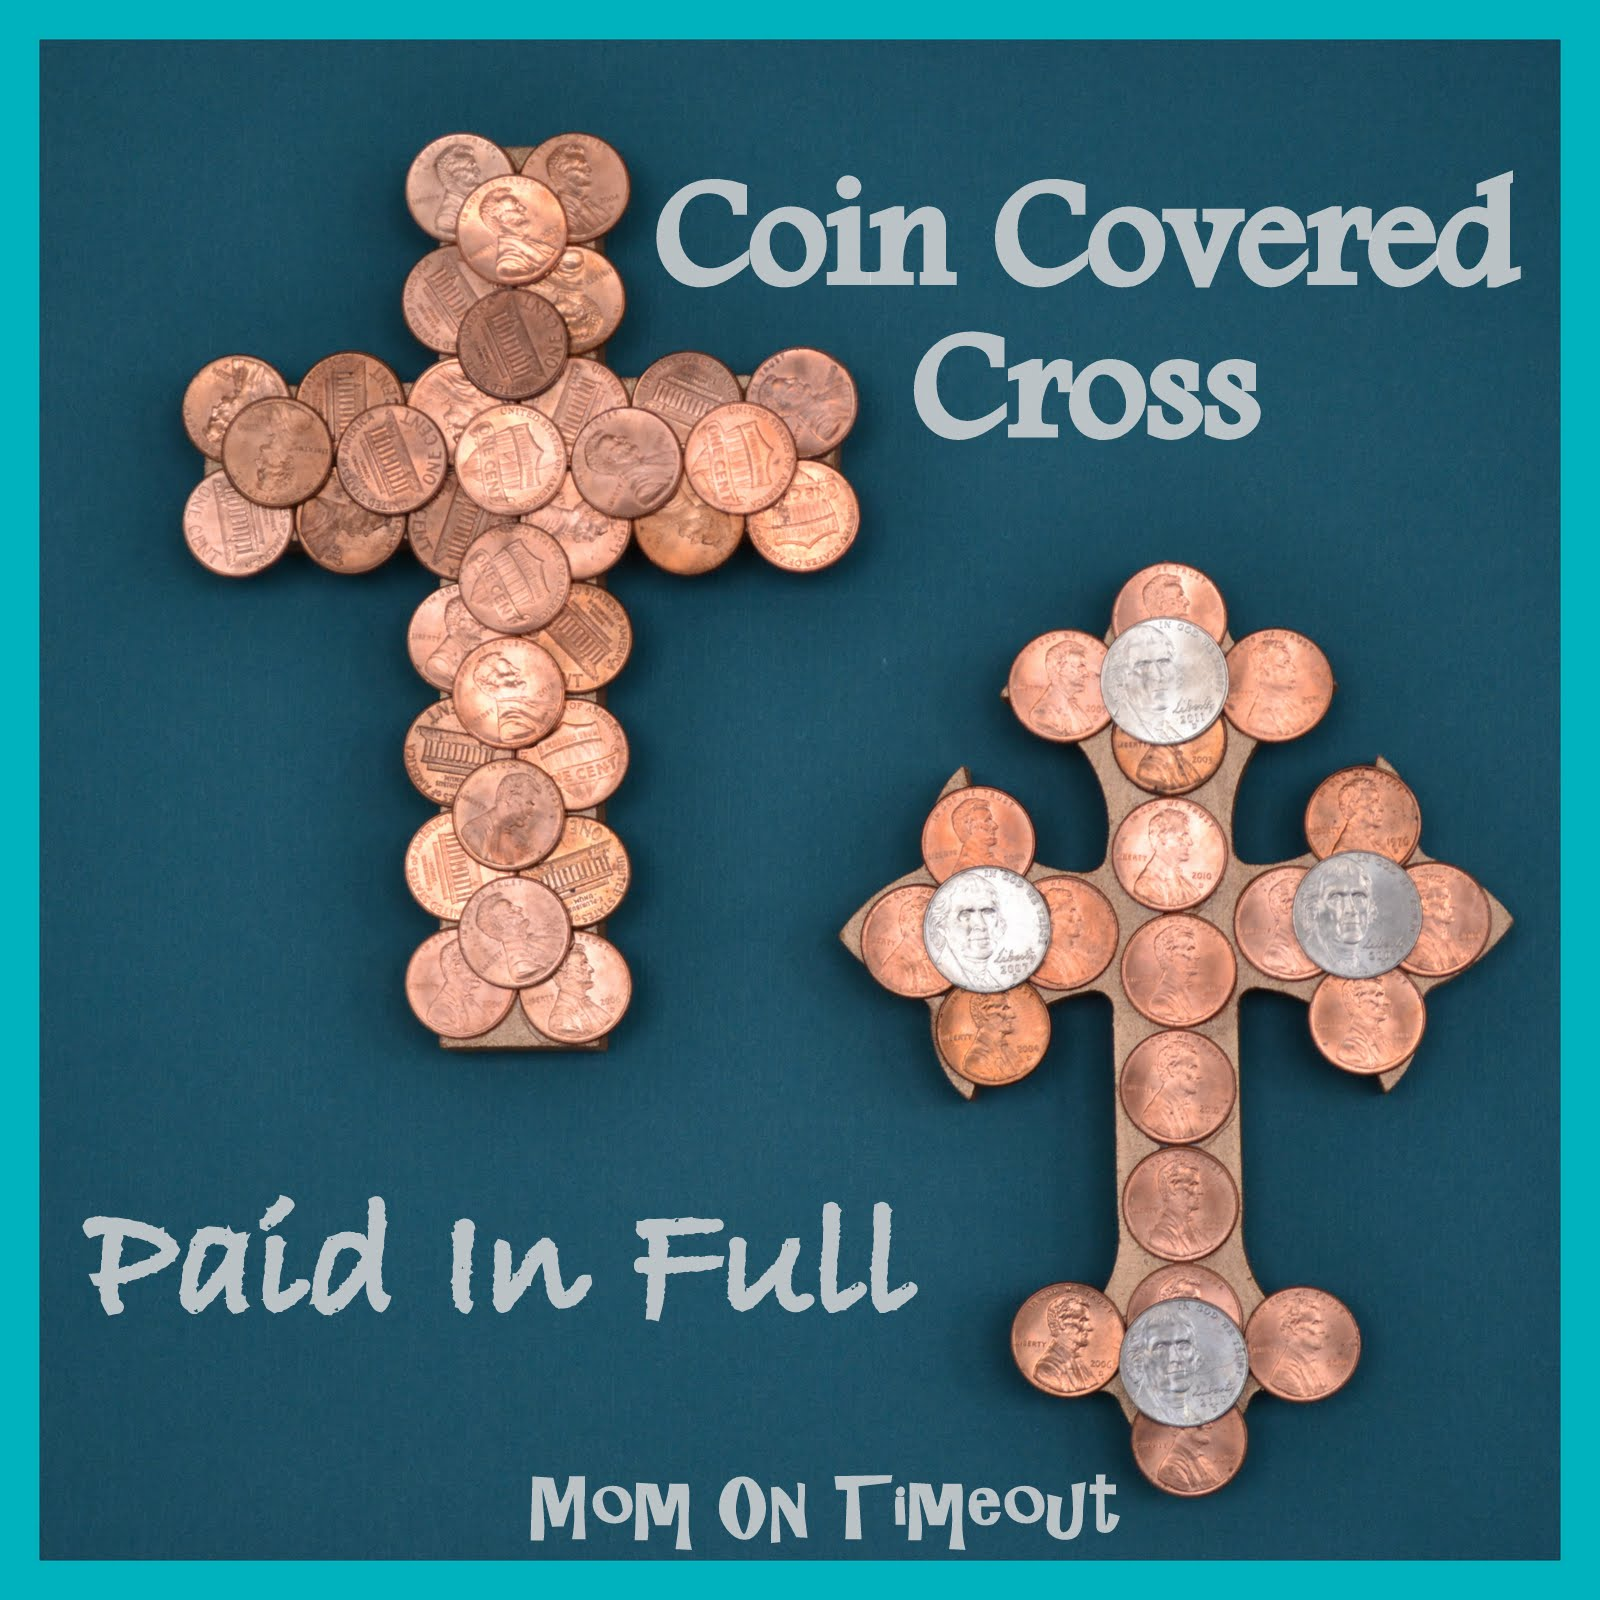 Coin Covered Cross Paid In Full Mom On Timeout